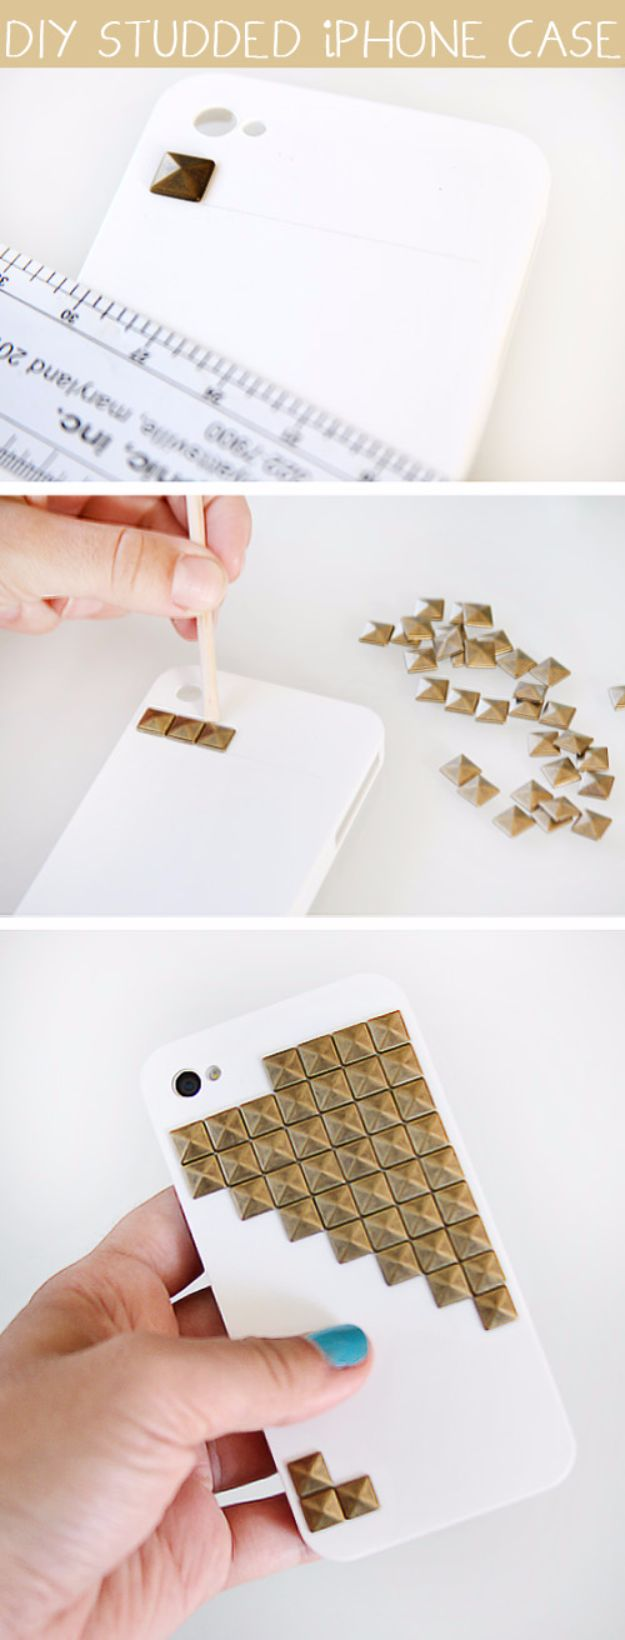 Crafts for Teens to Make and Sell - DIY Studded Iphone Case - Cheap and Easy DIY Ideas To Make For Extra Money - Best Things to Sell On Etsy, Dollar Store Craft Ideas, Quick Projects for Teenagers To Make Spending Cash - DIY Gifts, Wall Art, School Supplies, Room Decor, Jewelry, Fashion, Hair Accessories, Bracelets, Magnets #teencrafts #craftstosell #etsyideass